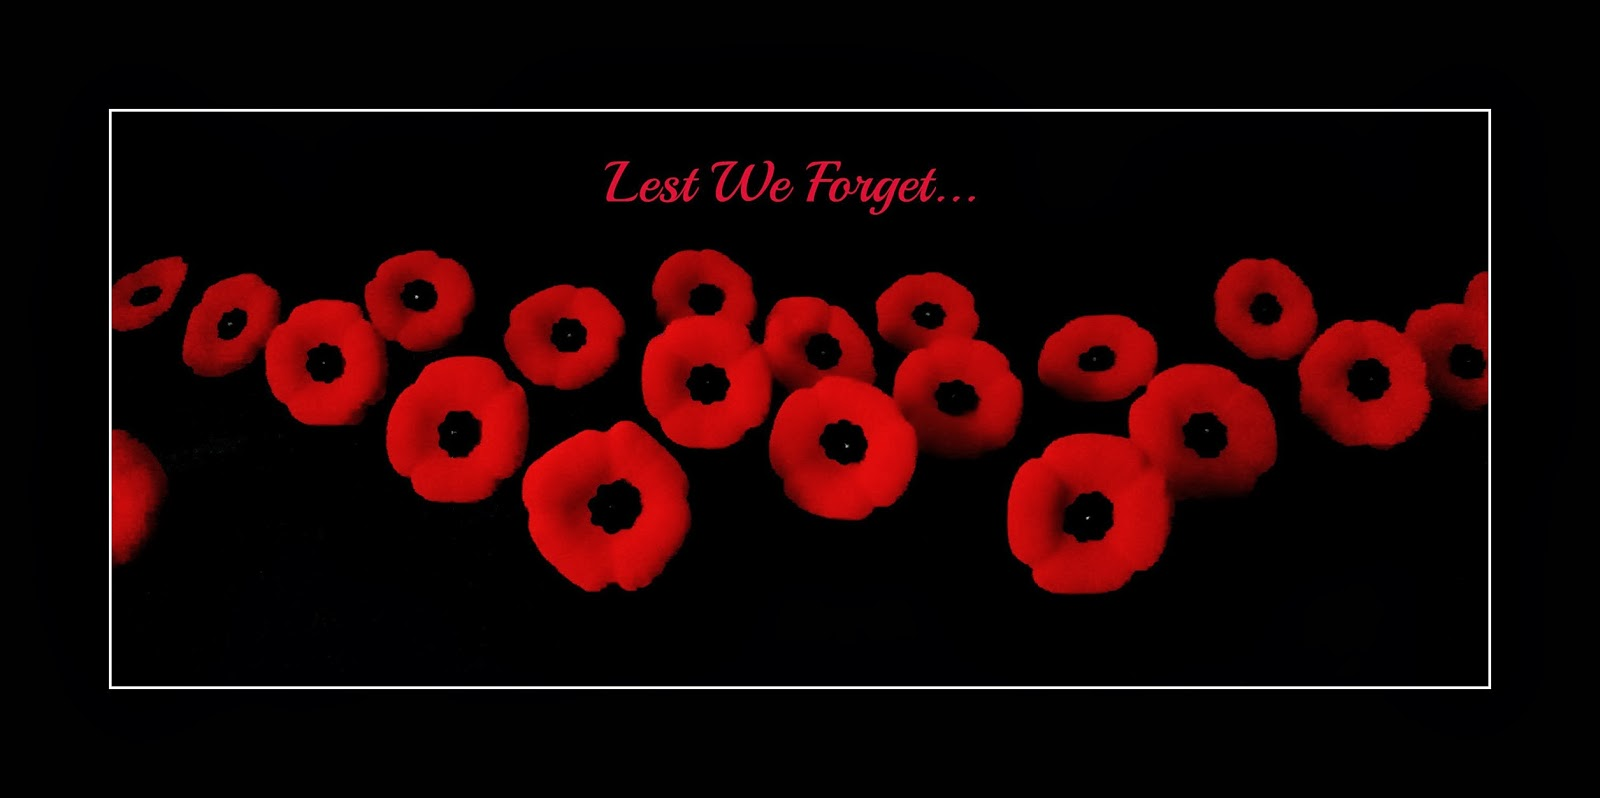 lest we forget - photo #16